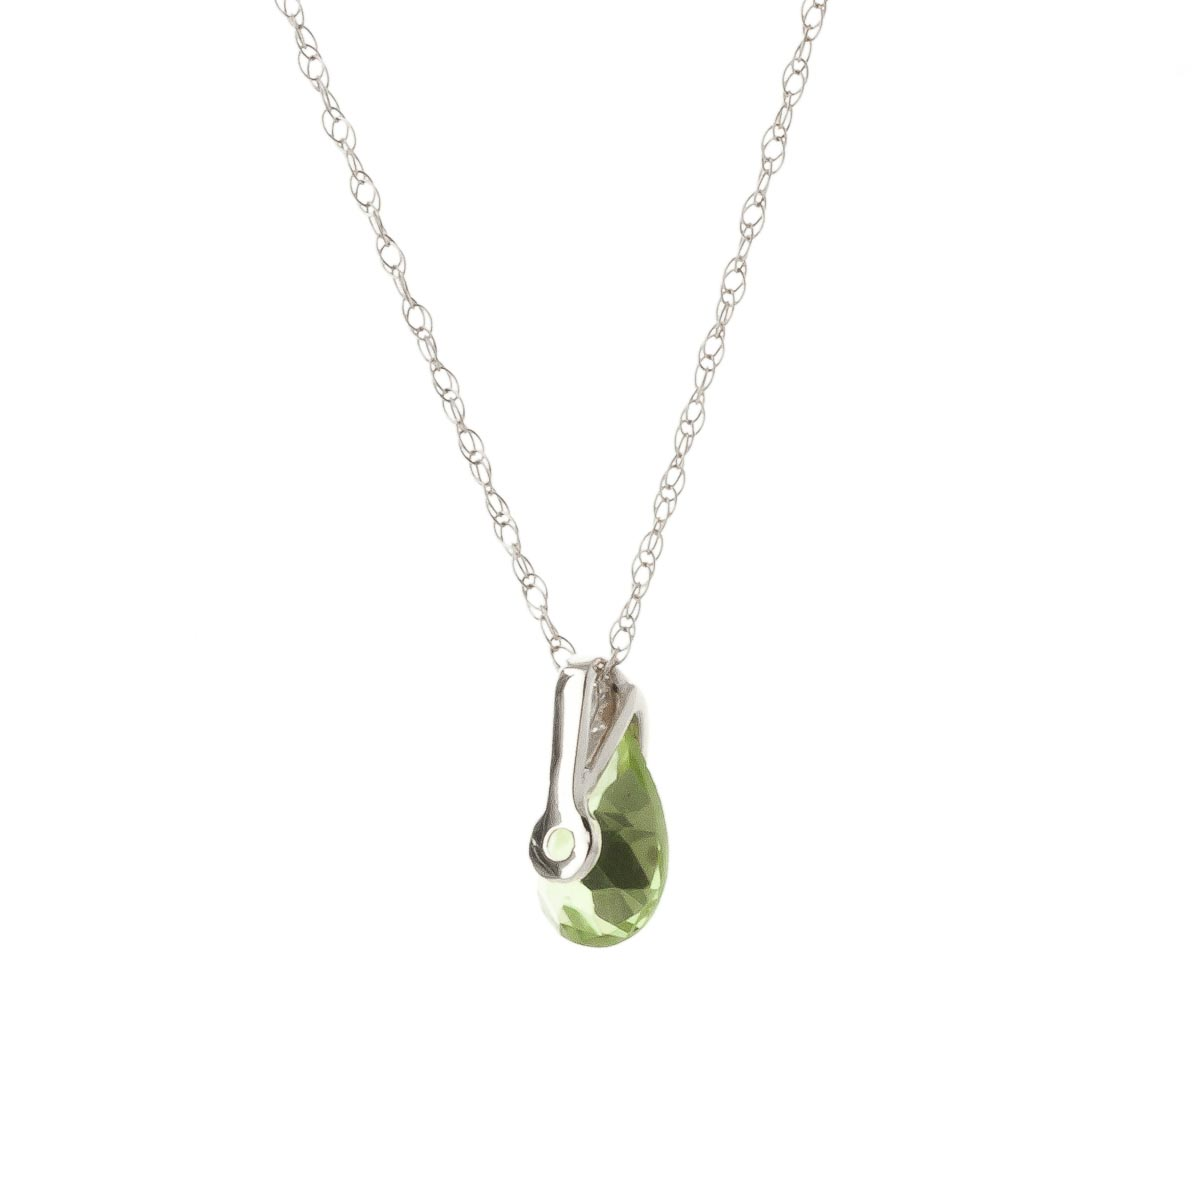 Peridot Pear Drop Pendant Necklace 0.68 ct in 9ct White Gold